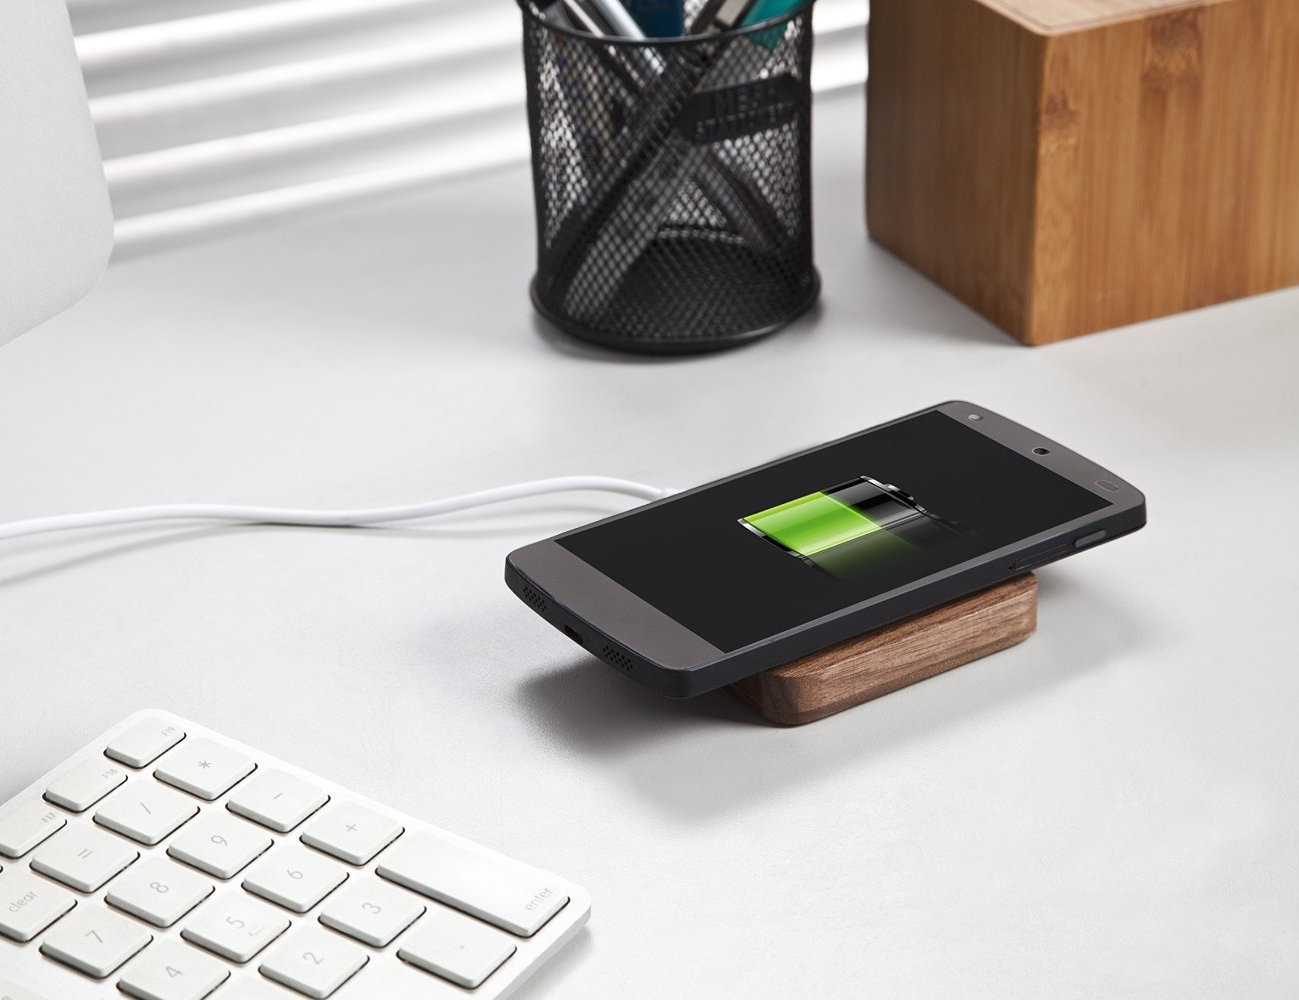 Qi Wireless Charging Solid Wooden Pad by Wasserstein